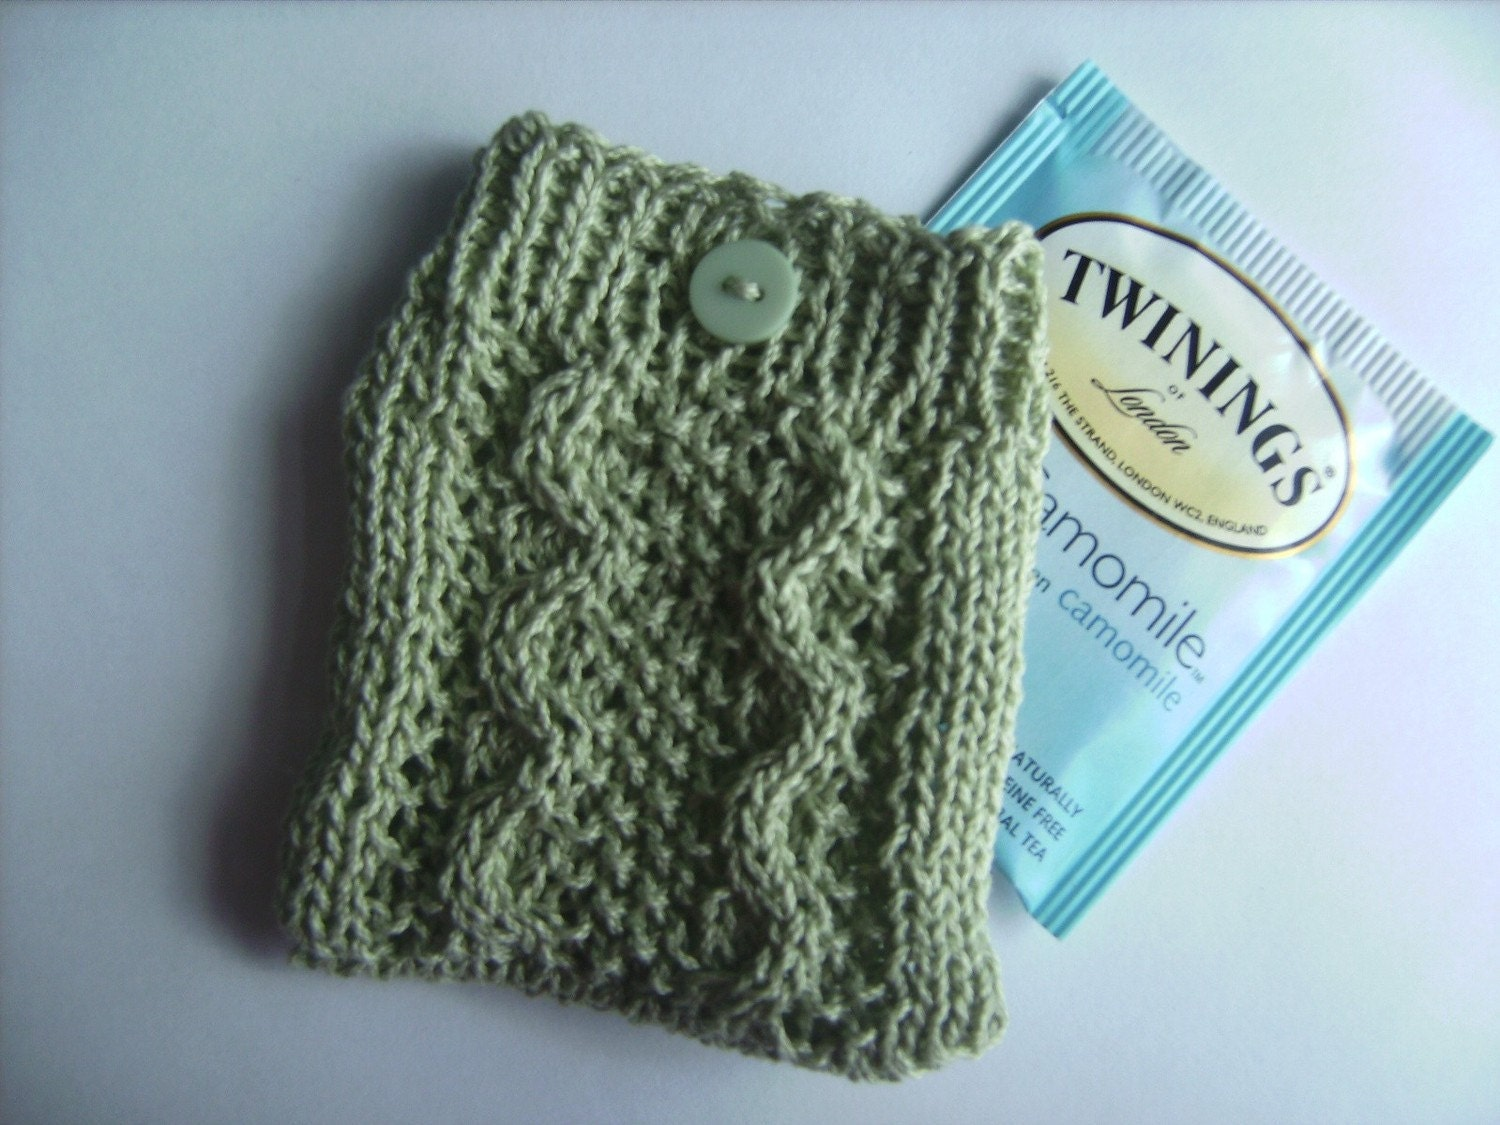 Handmade Elegant Light Green Cable Knit Tea Bag Cozy or Jewelry Pouch II